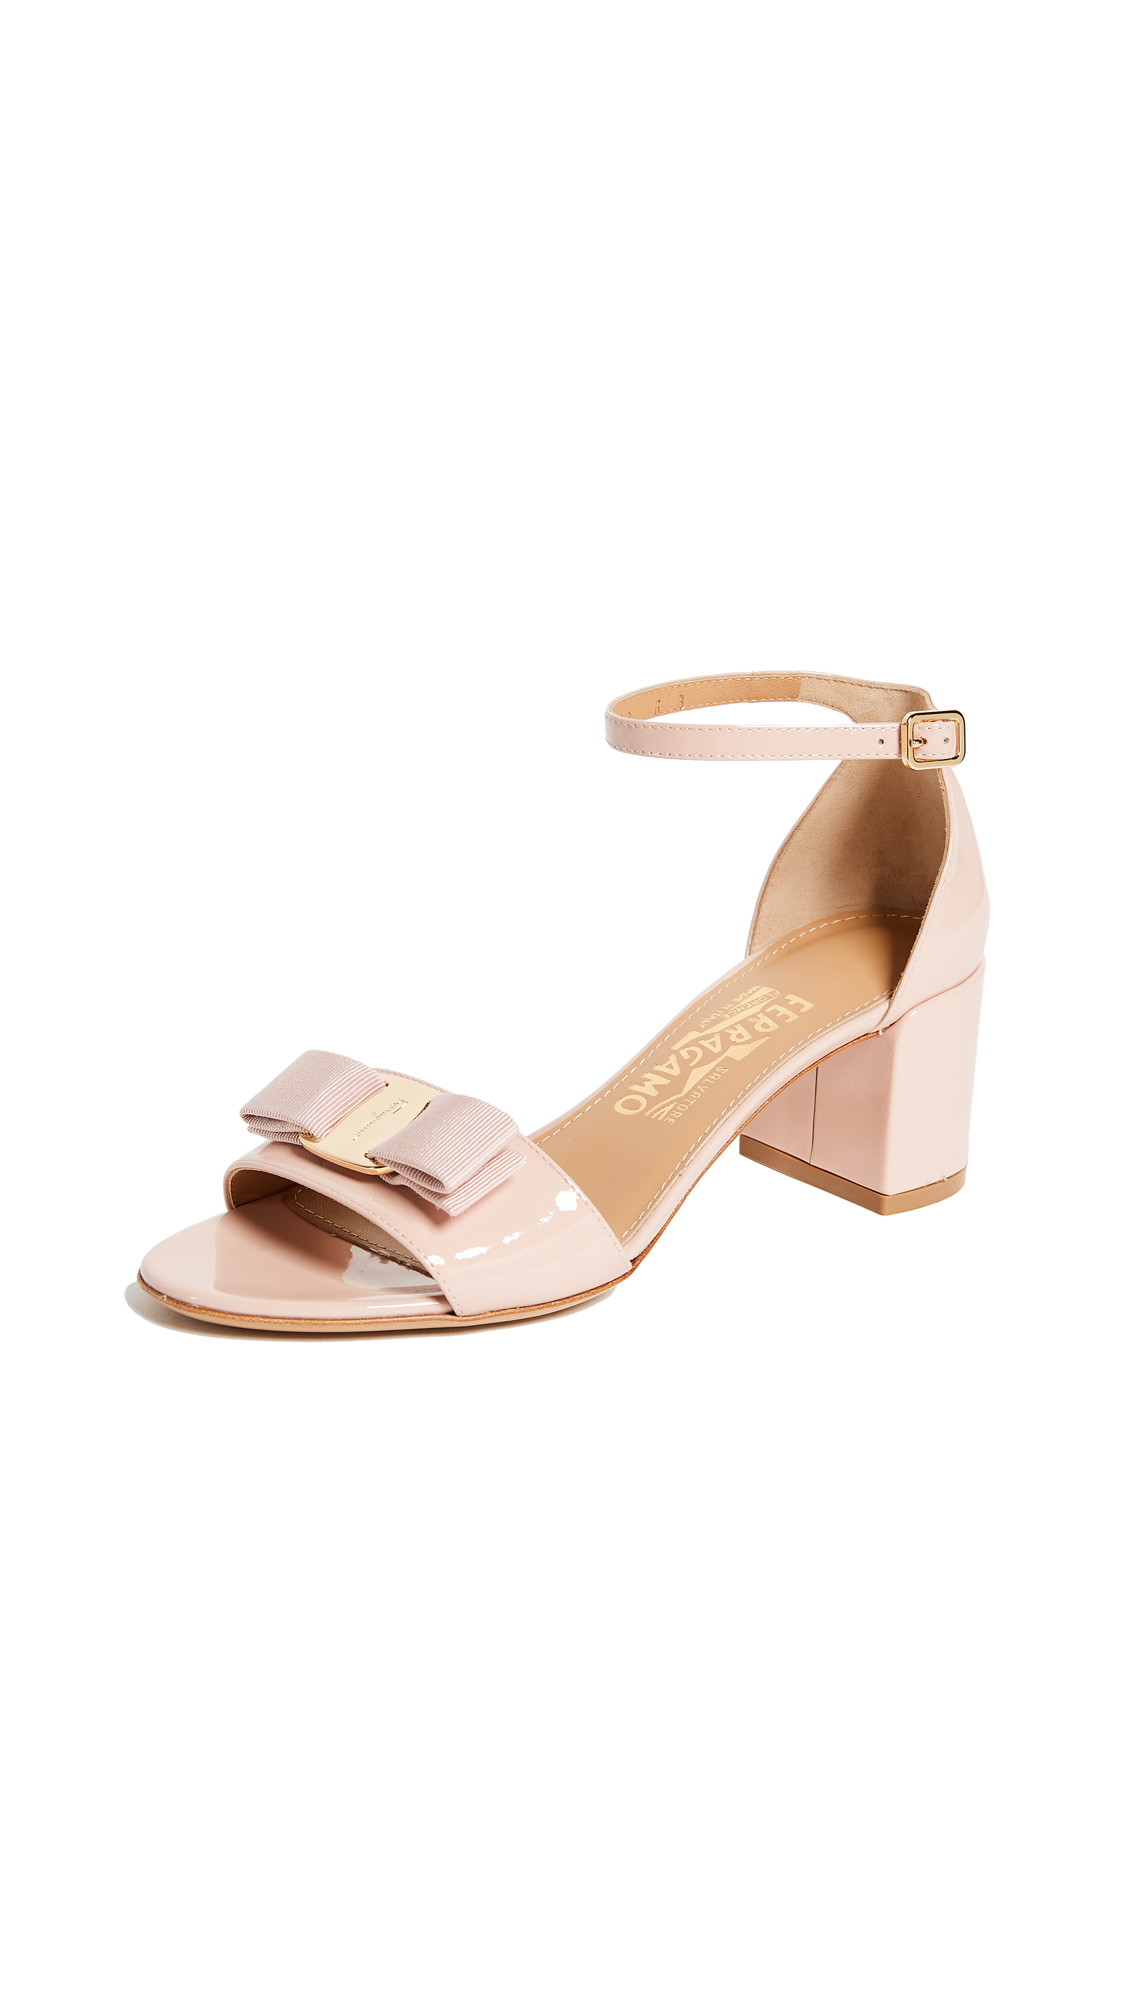 Salvatore Ferragamo Gavina City Sandals - Bon Bon